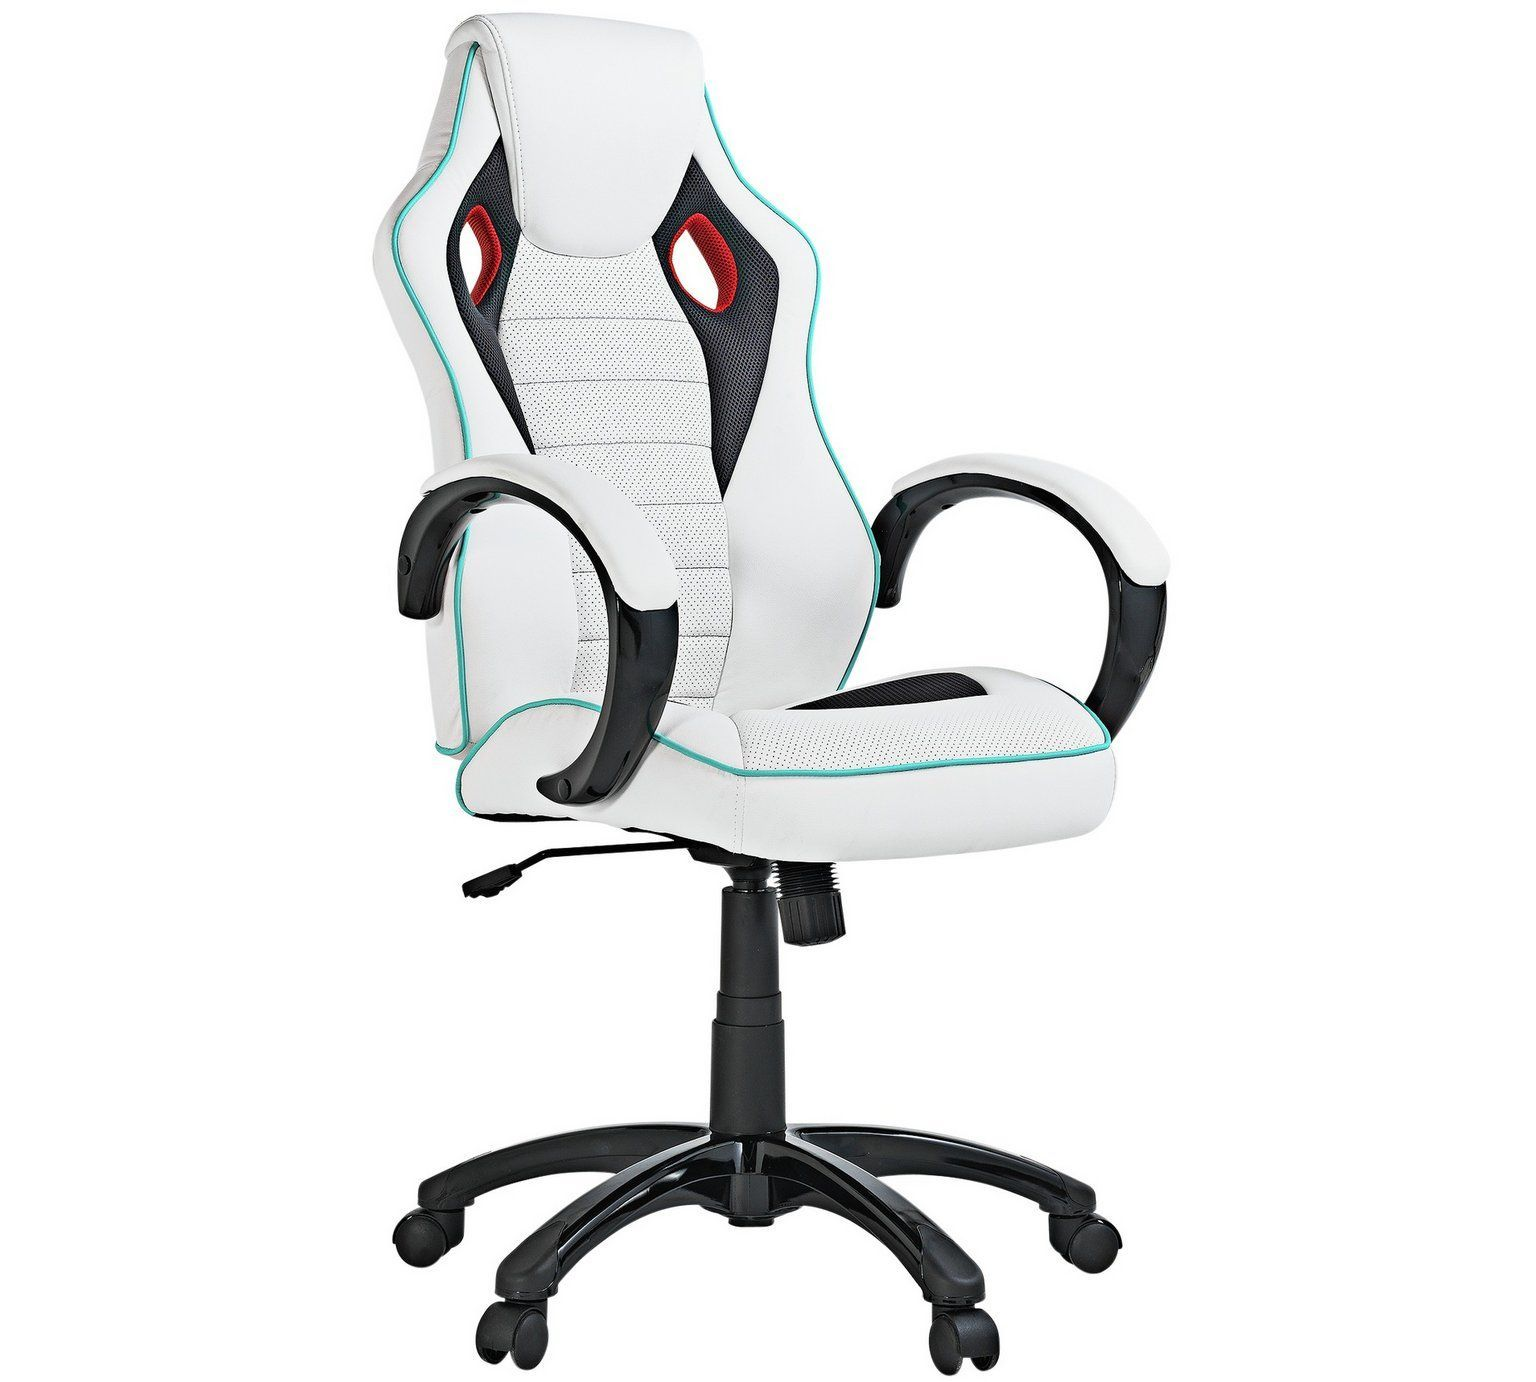 Buy XRocker Height Adjustable Office Gaming Chair White